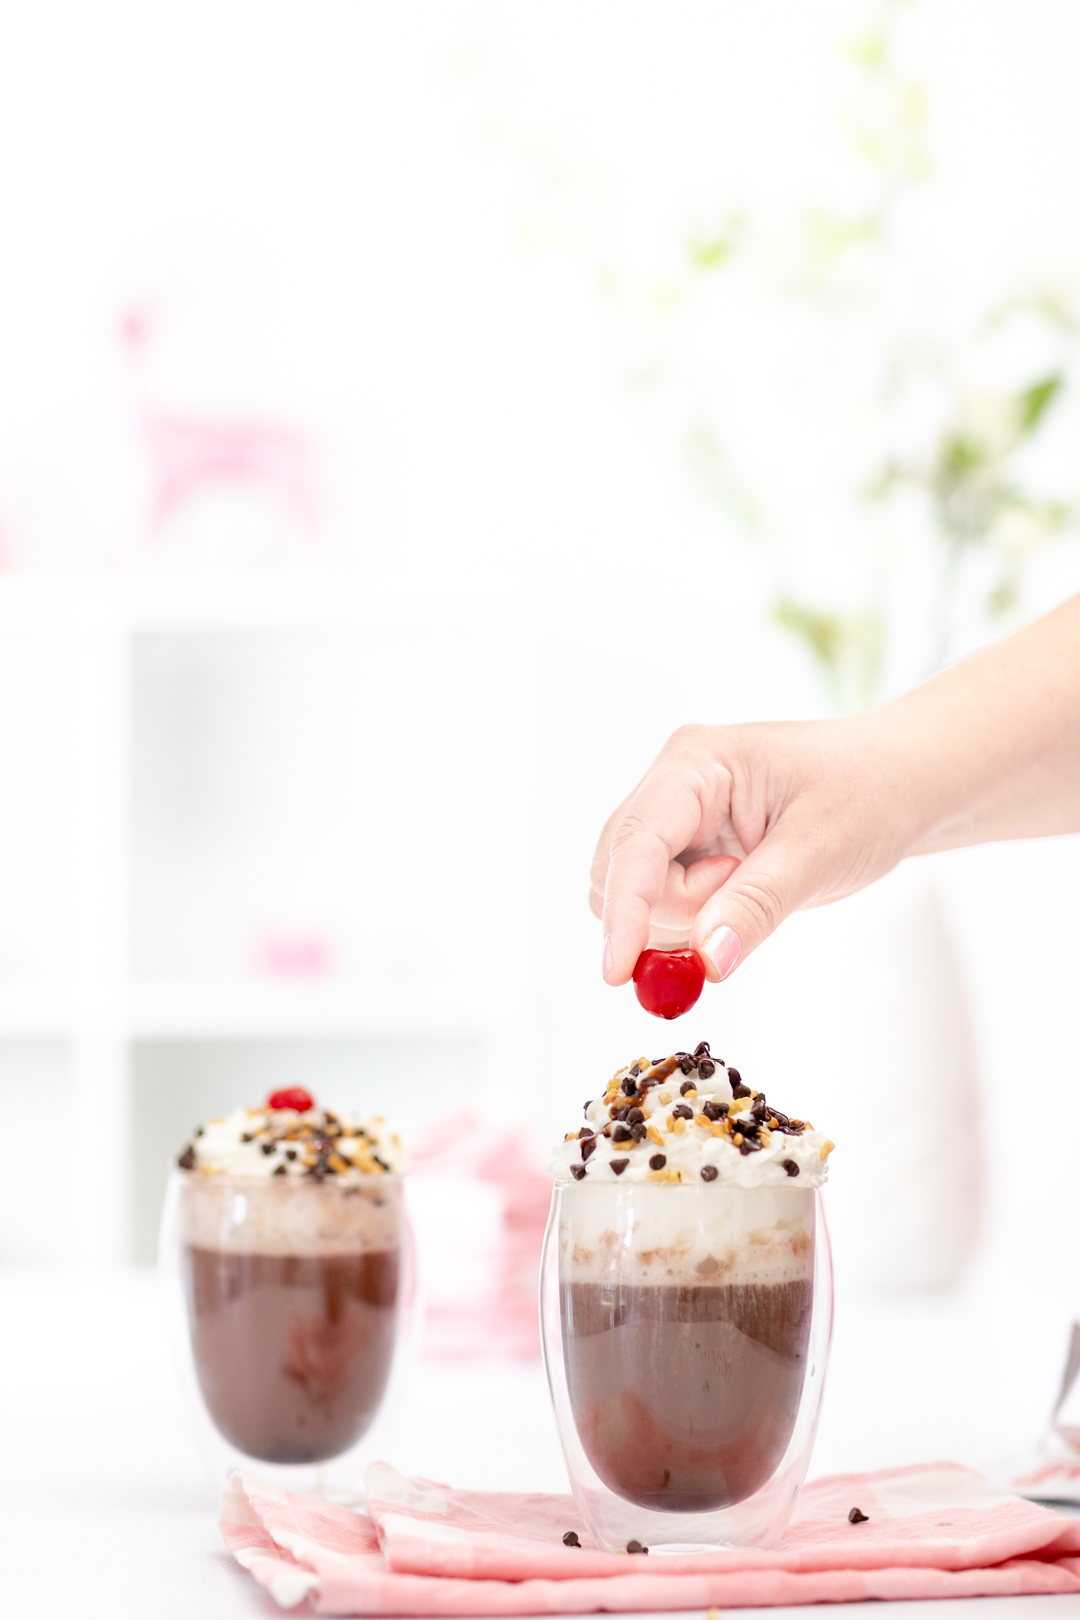 placing cherry on top of hot cocoa and whipped cream